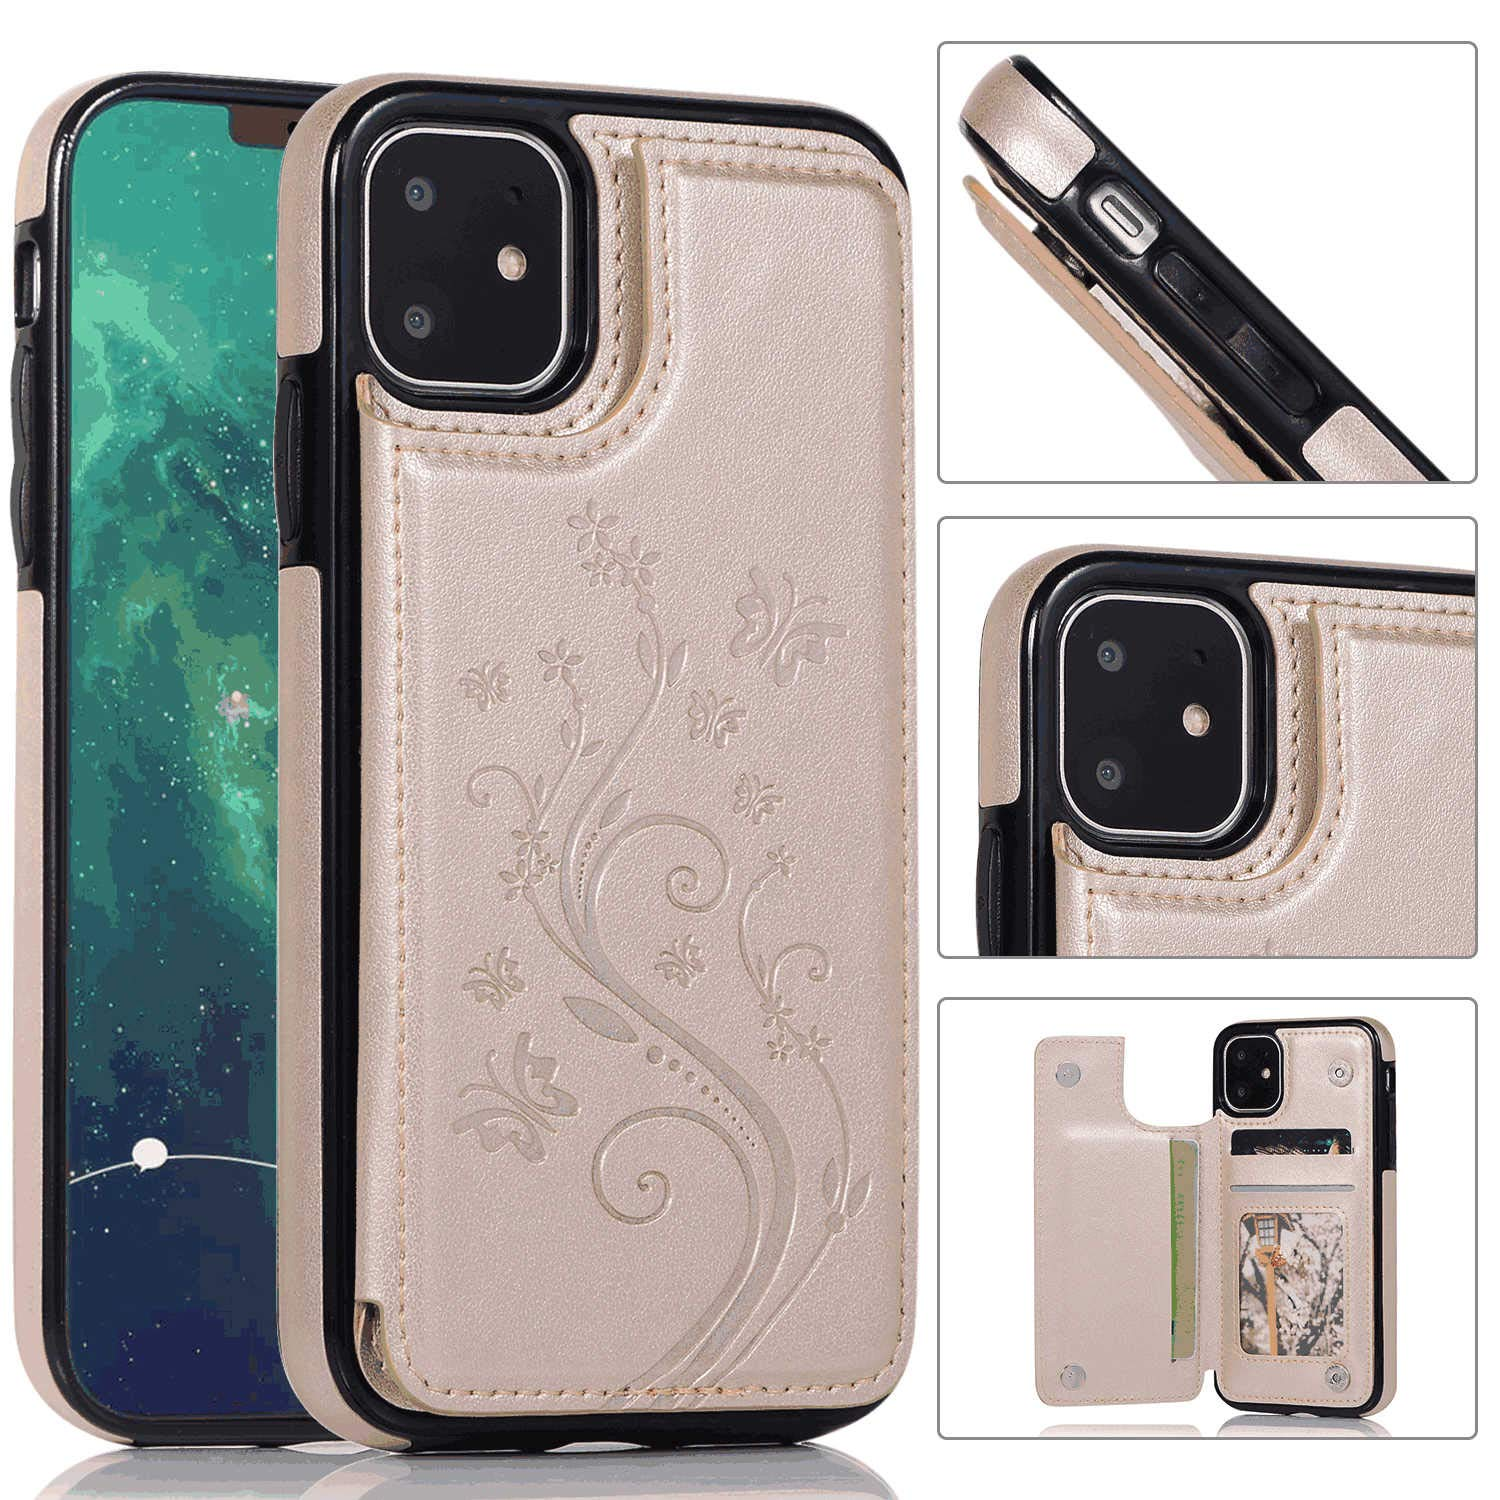 iPhone 11 Pro Flip Case Cover for Leather Kickstand Card Holders Extra-Shockproof Business Cell Phone case Flip Cover